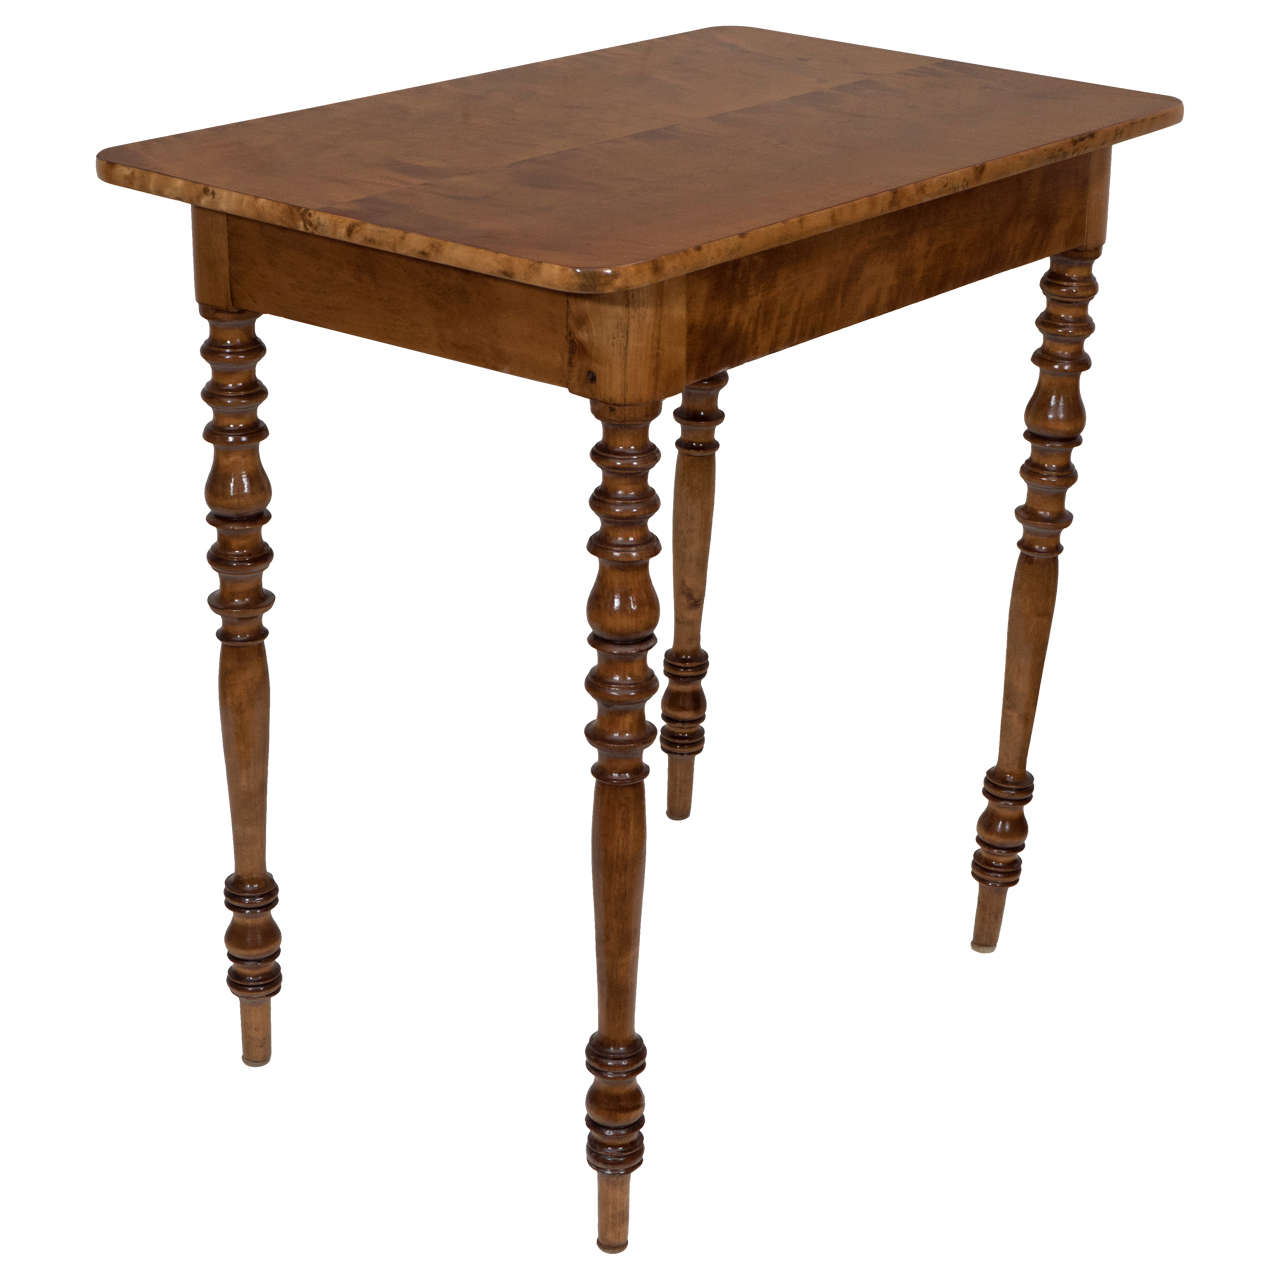 Renaissance Revival Side Table